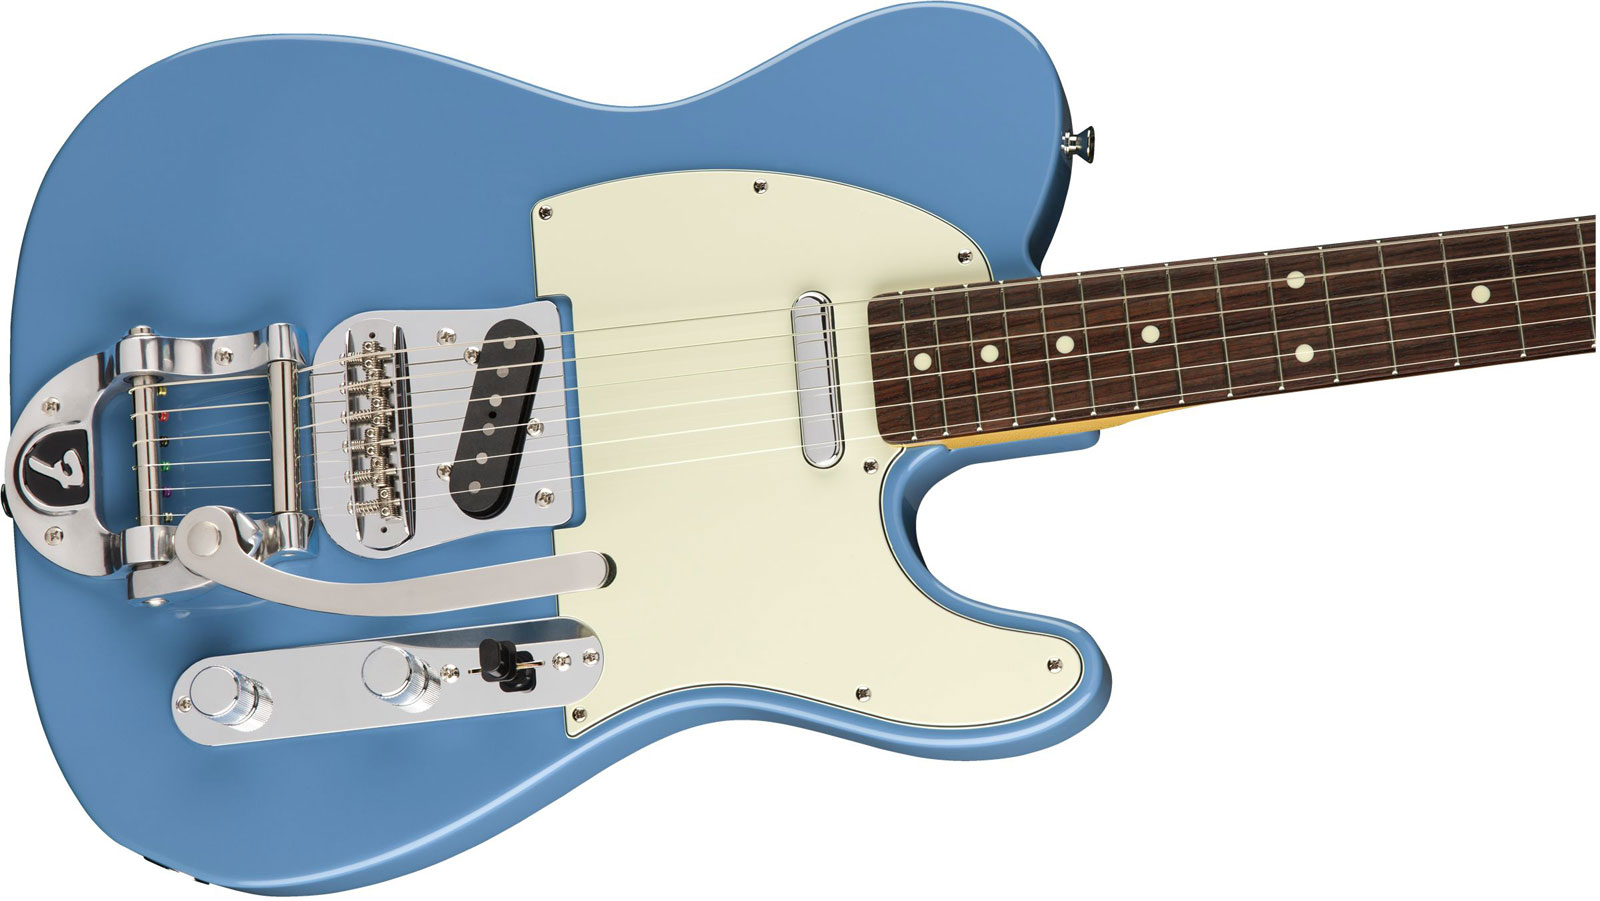 LIMITED EDITION MADE IN JAPAN TRADITIONAL 60S TELECASTER BIGSBY RW CANDY BLUE